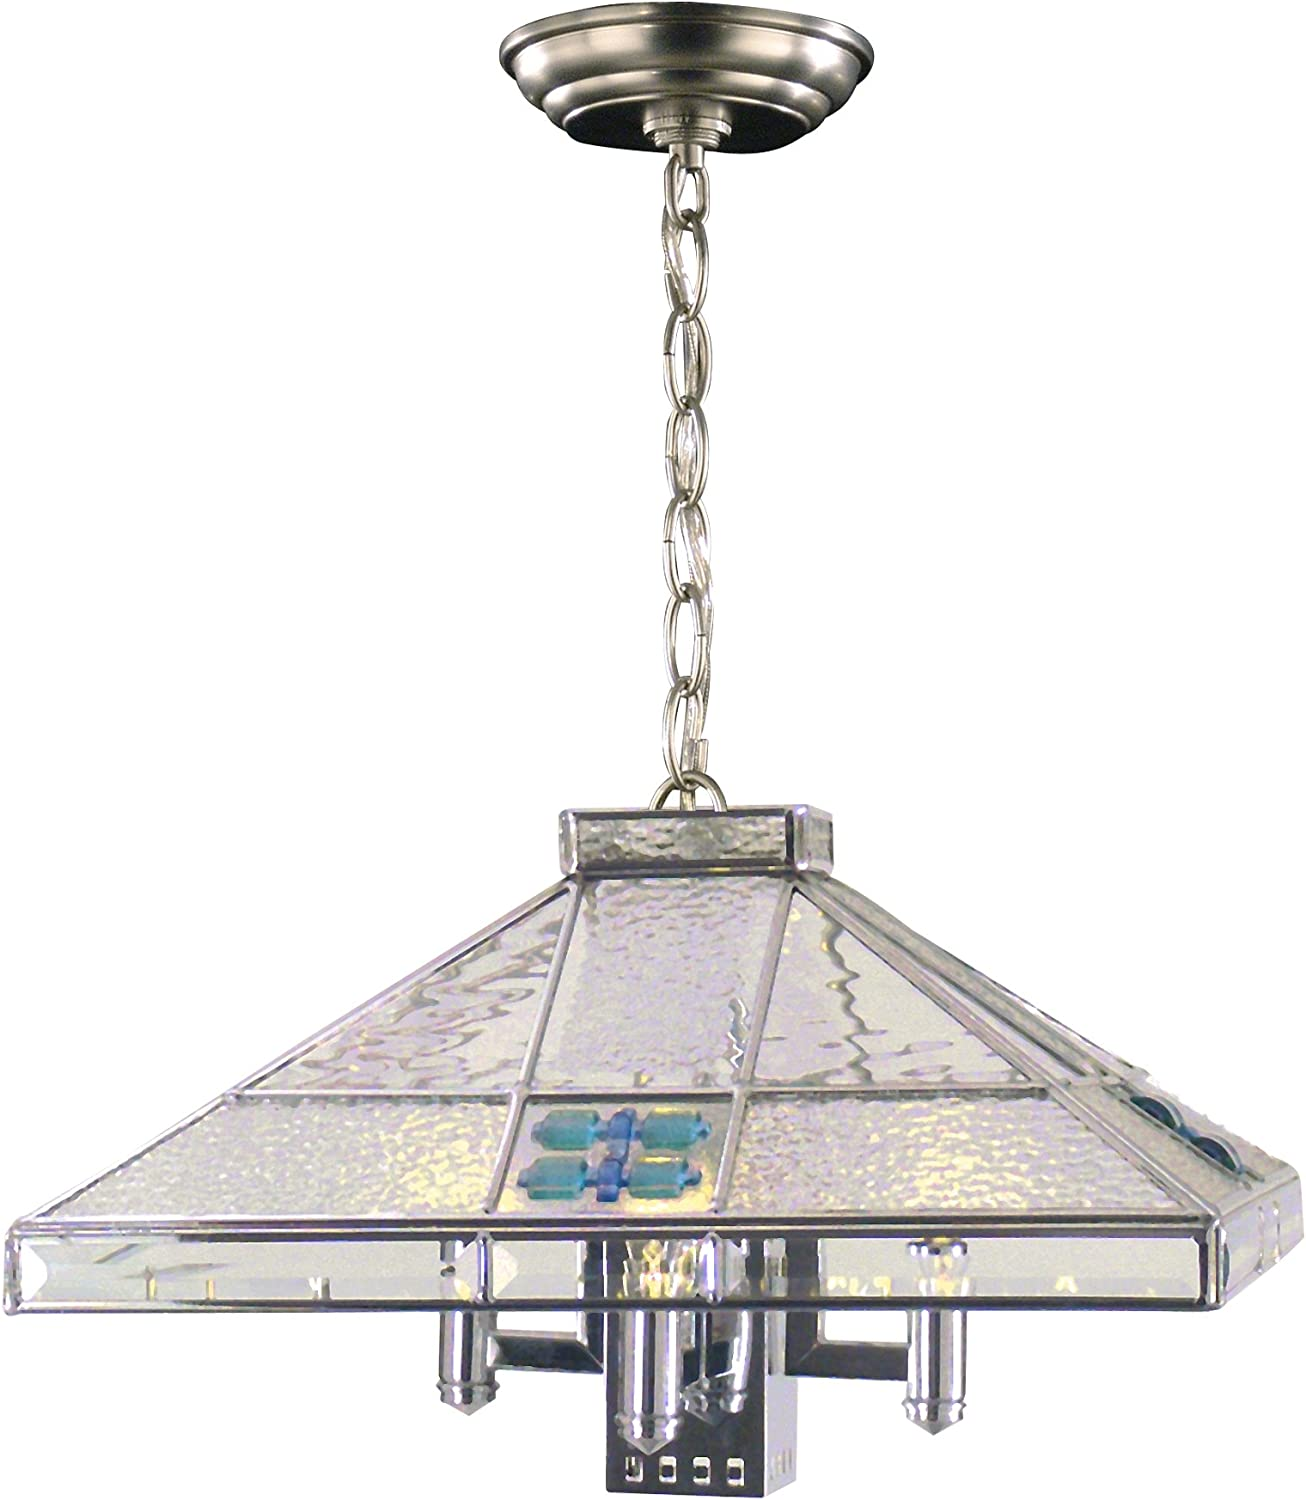 Springdale STH11034 Blue Fused Max 81% OFF 3-Light Fixture Hanging Silver Limited time for free shipping